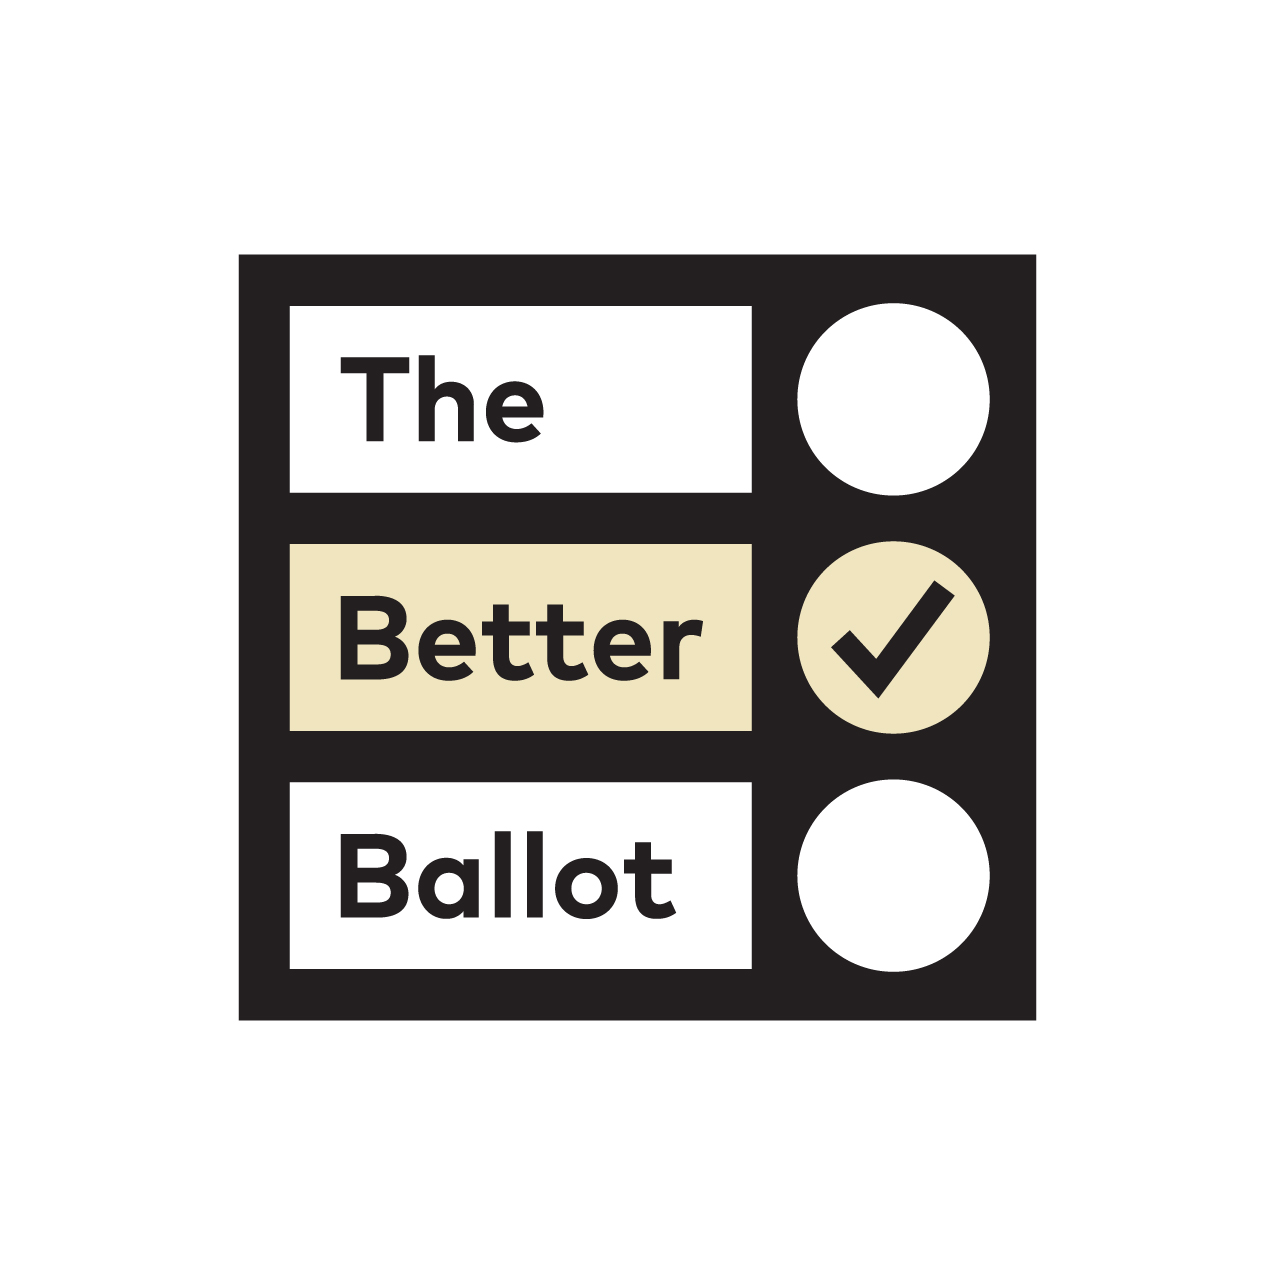 The Better Ballot